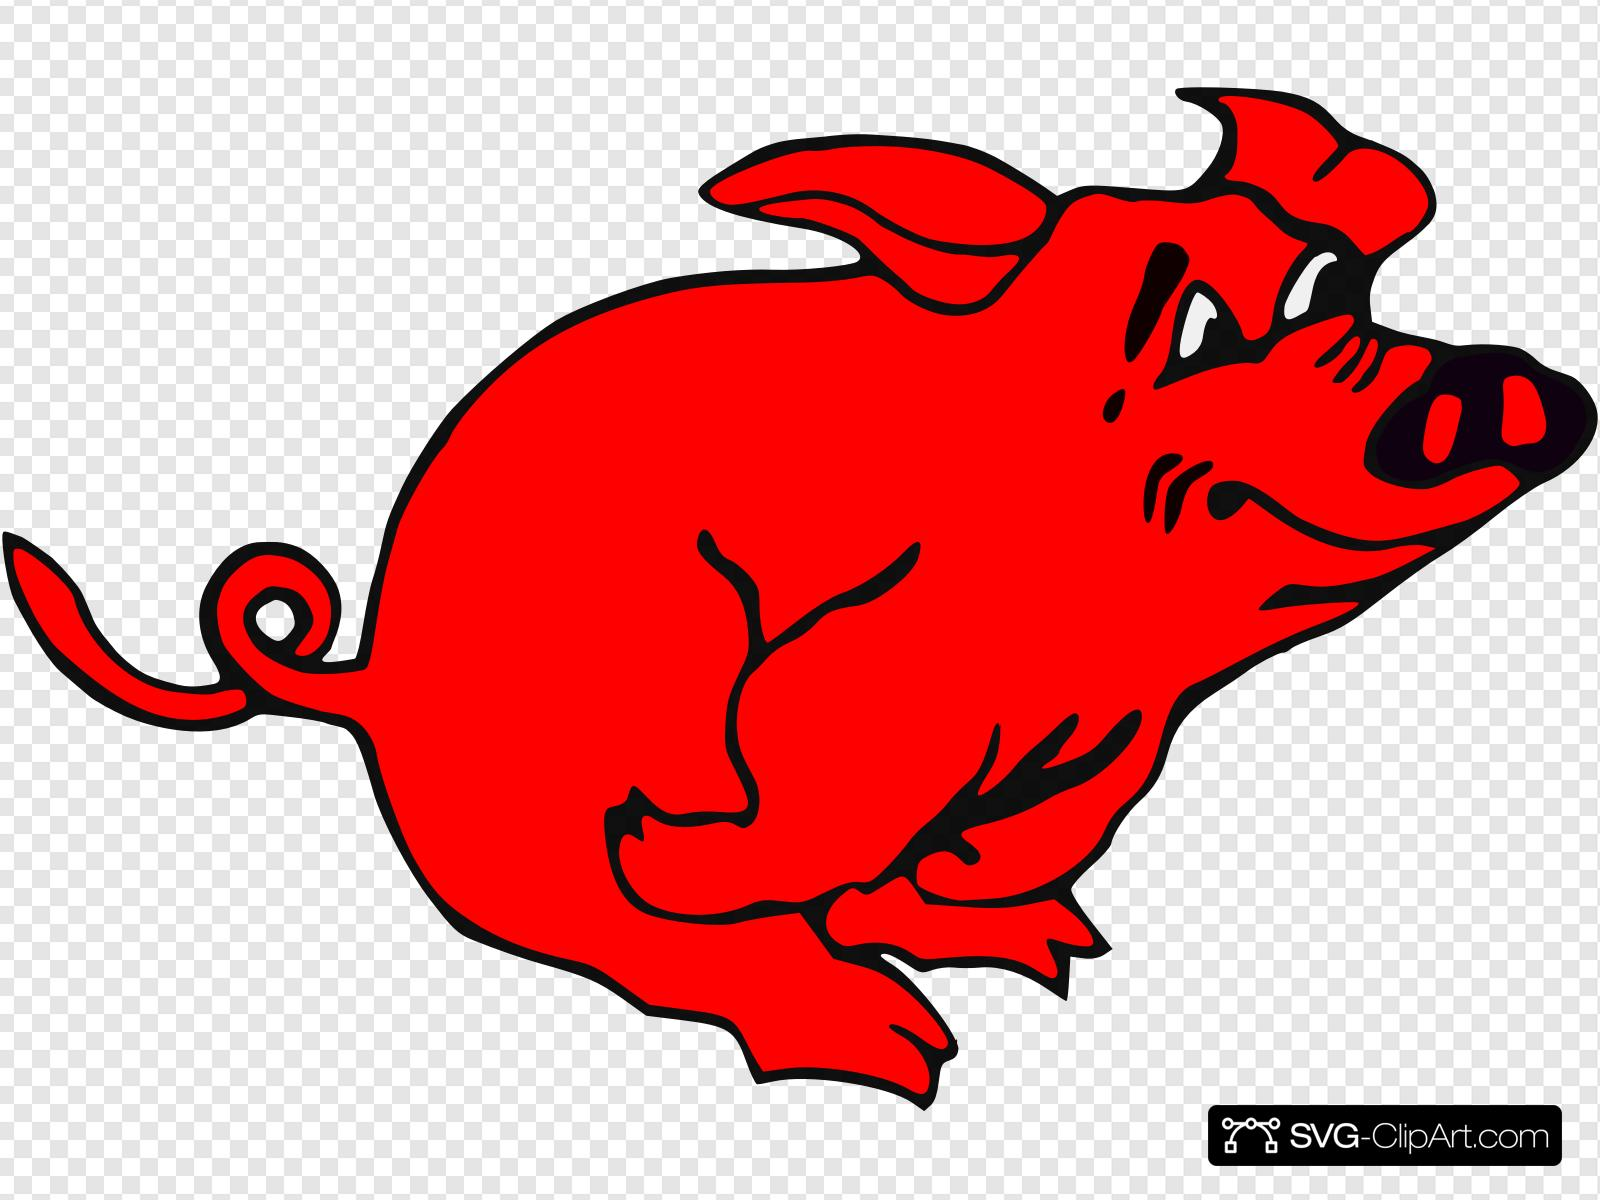 Red Running Pig Clip art, Icon and SVG.